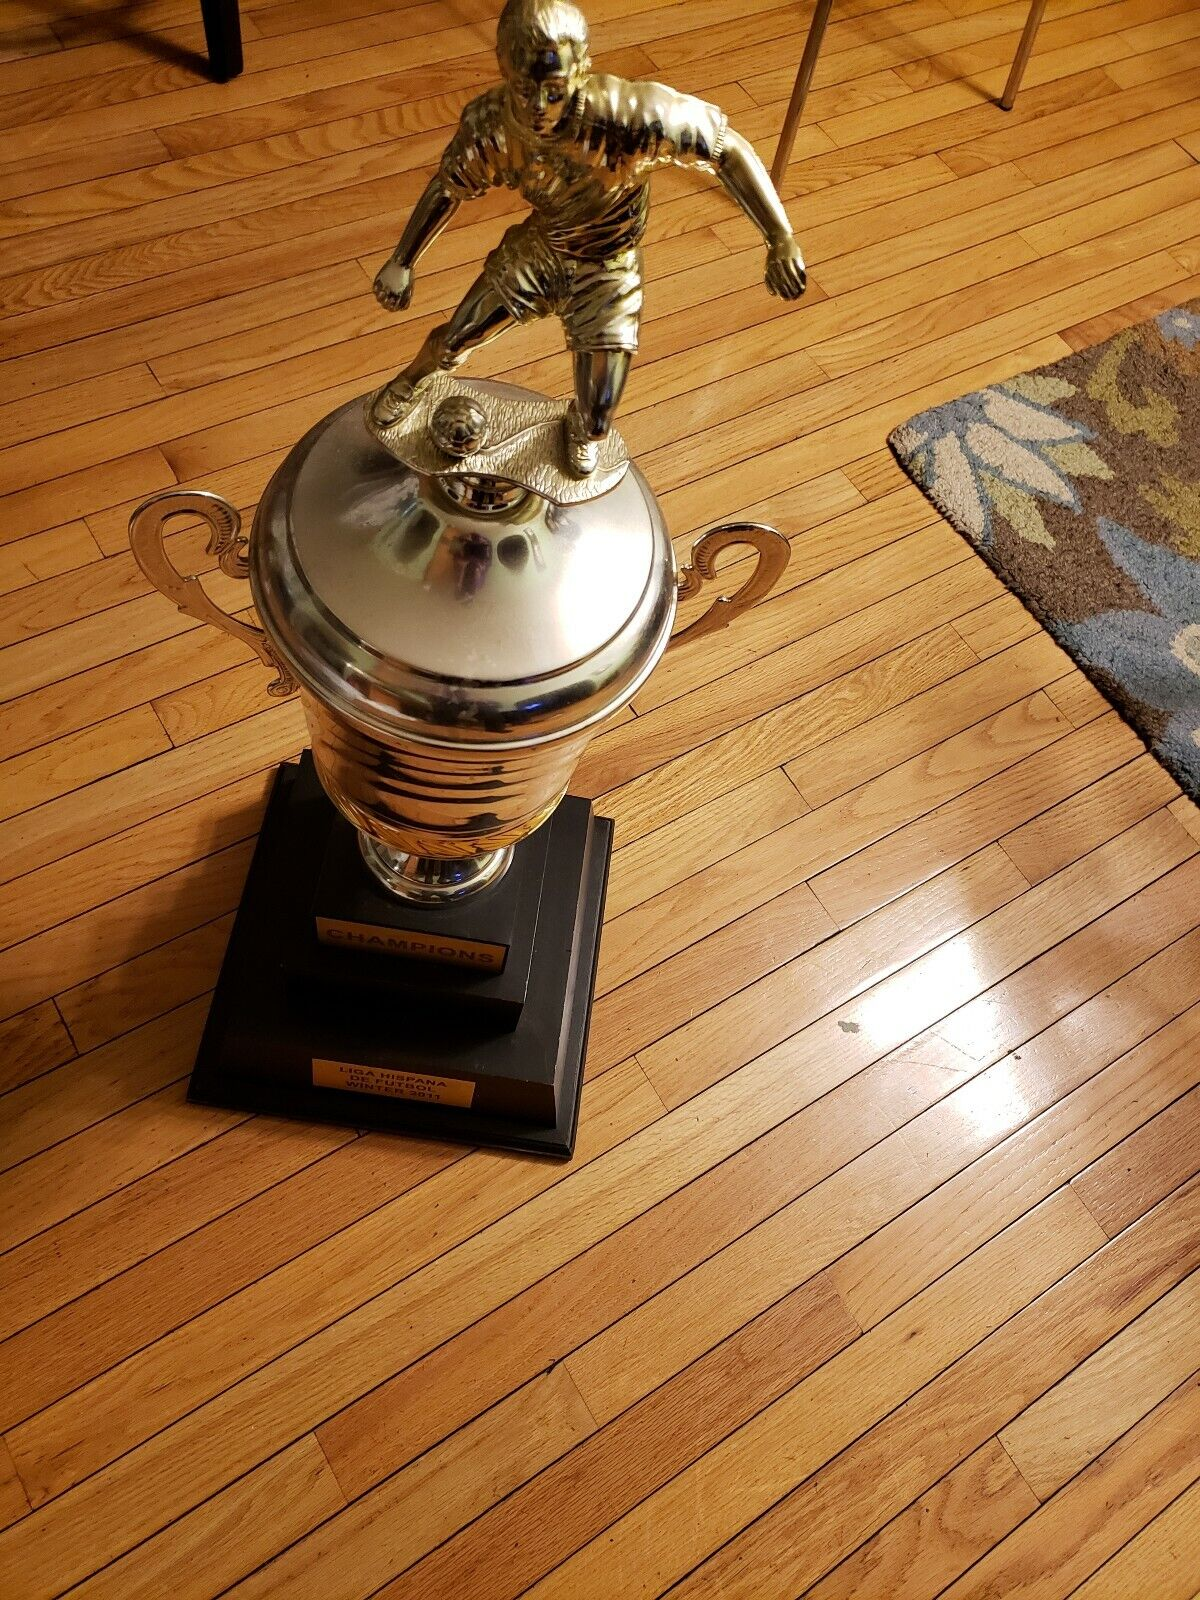 Championship Soccer trophy. Height 35in